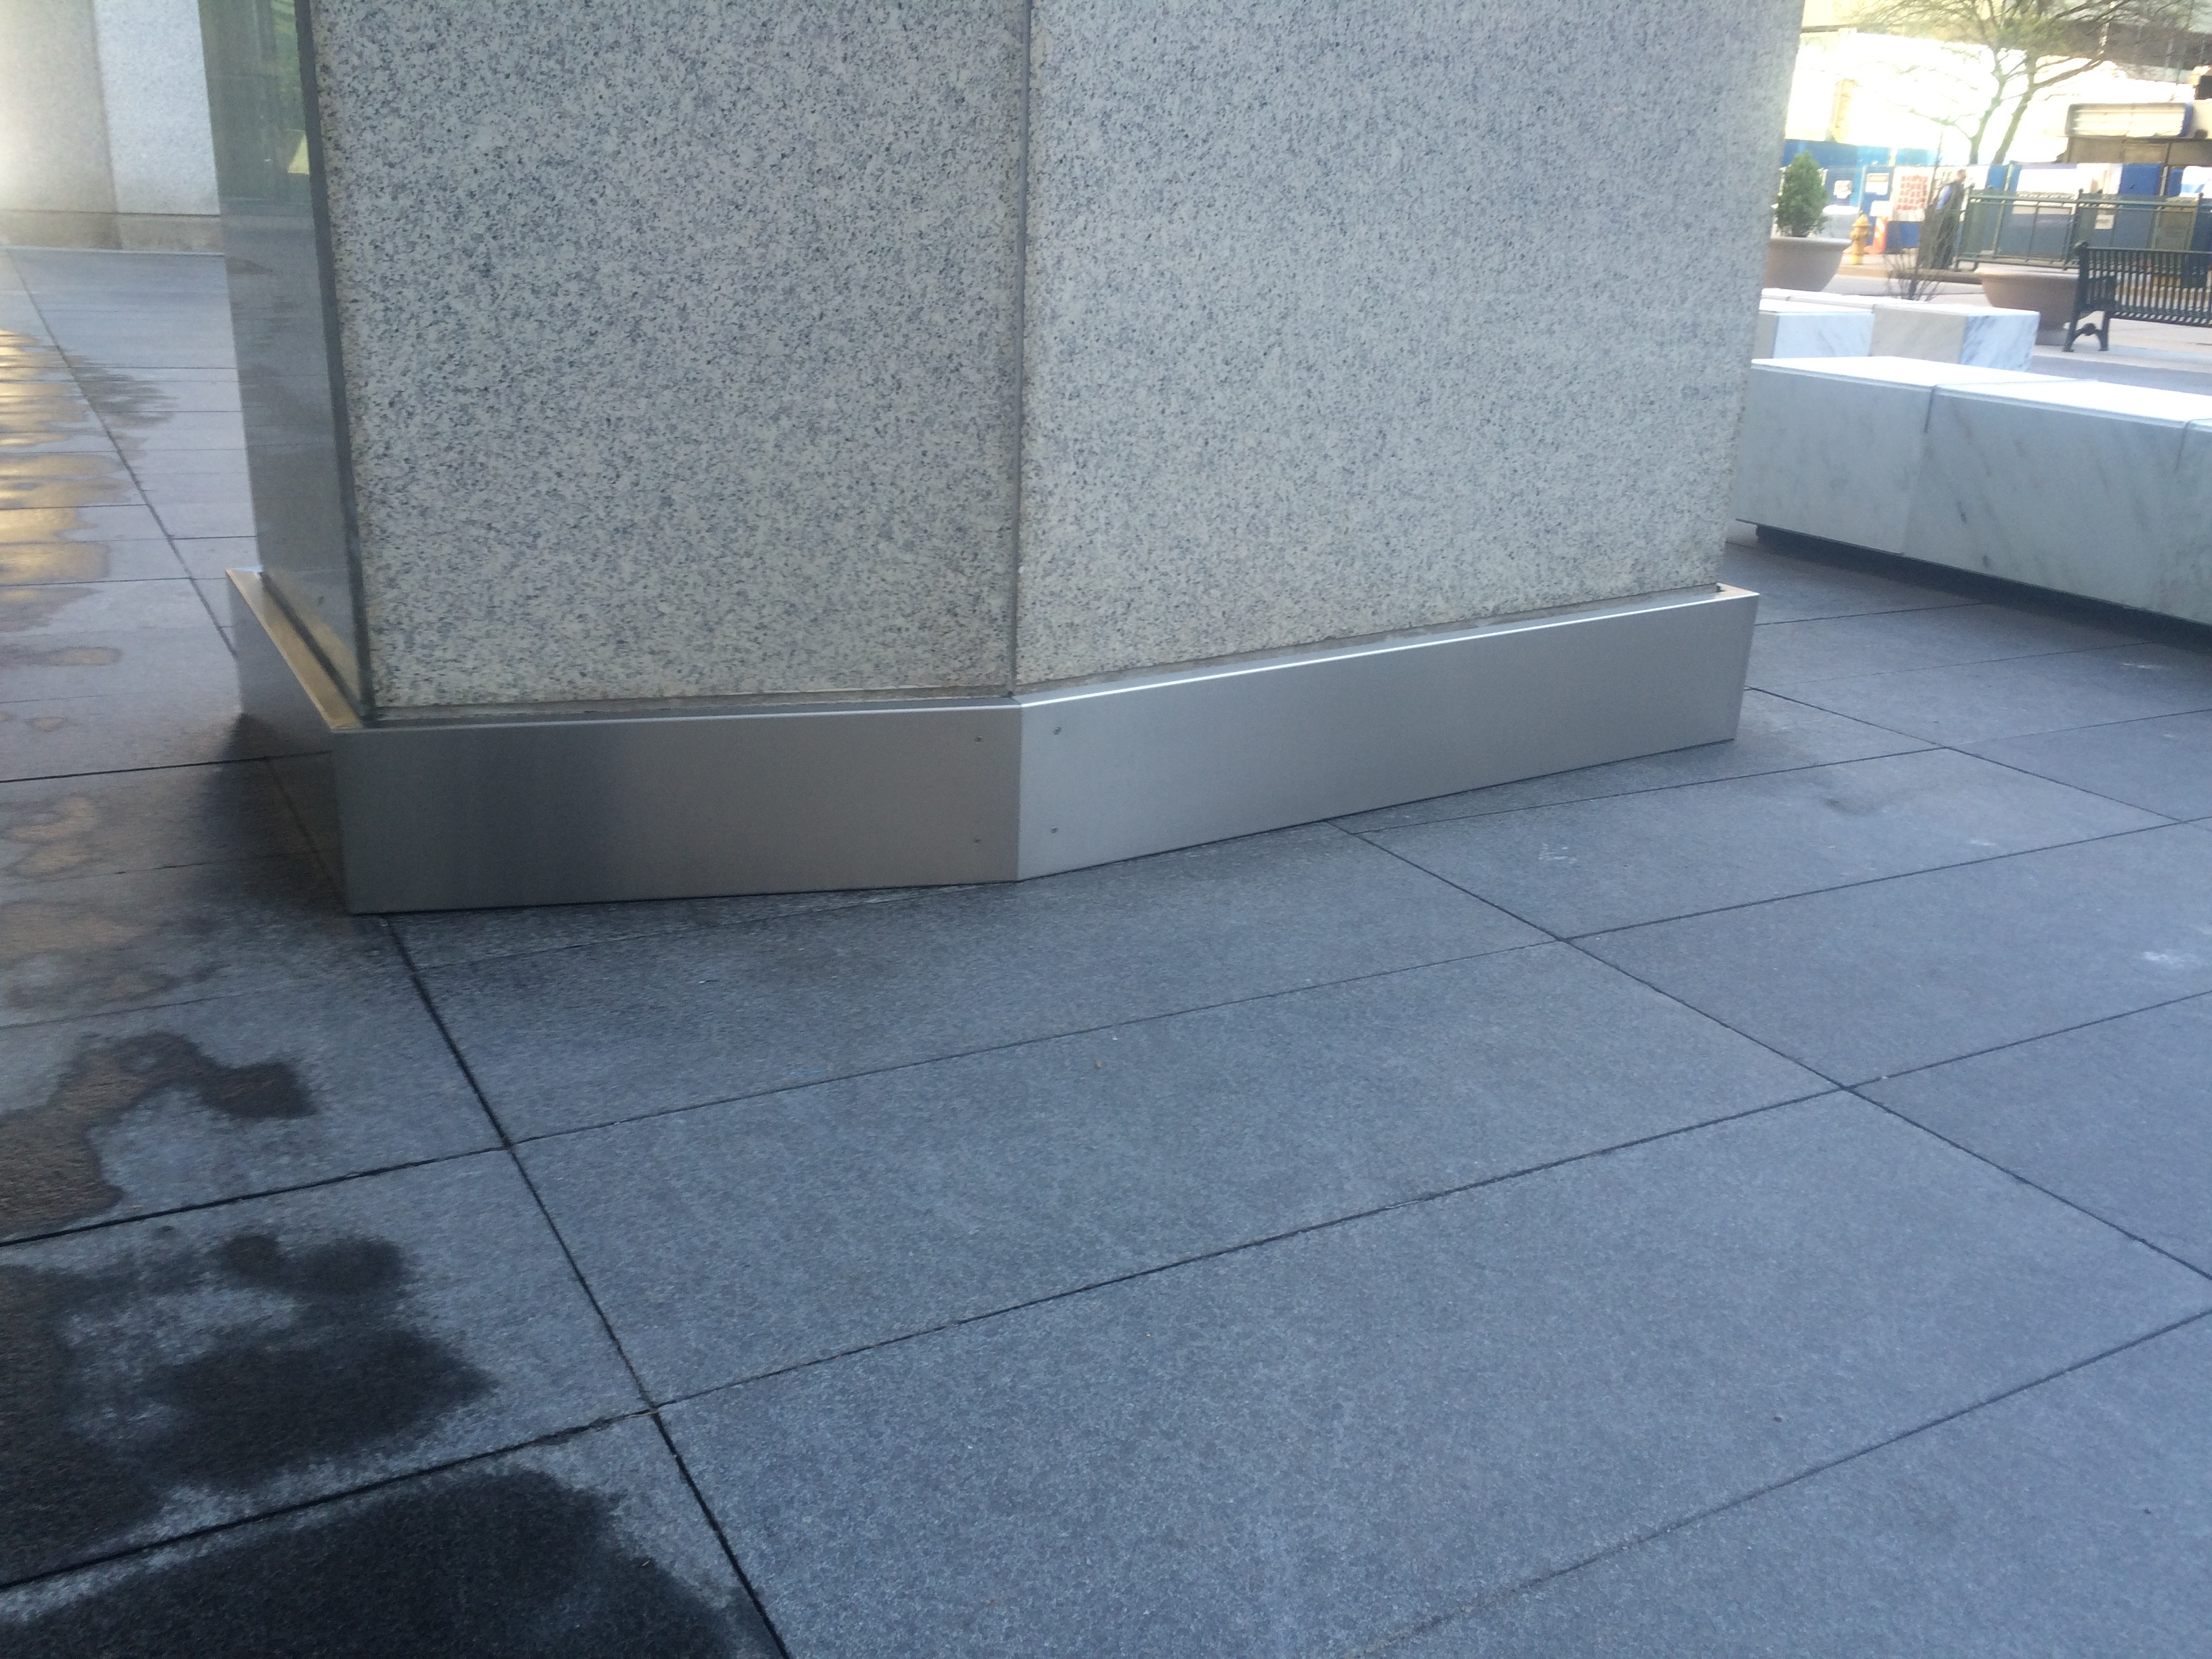 Stainless Steel Base Trim